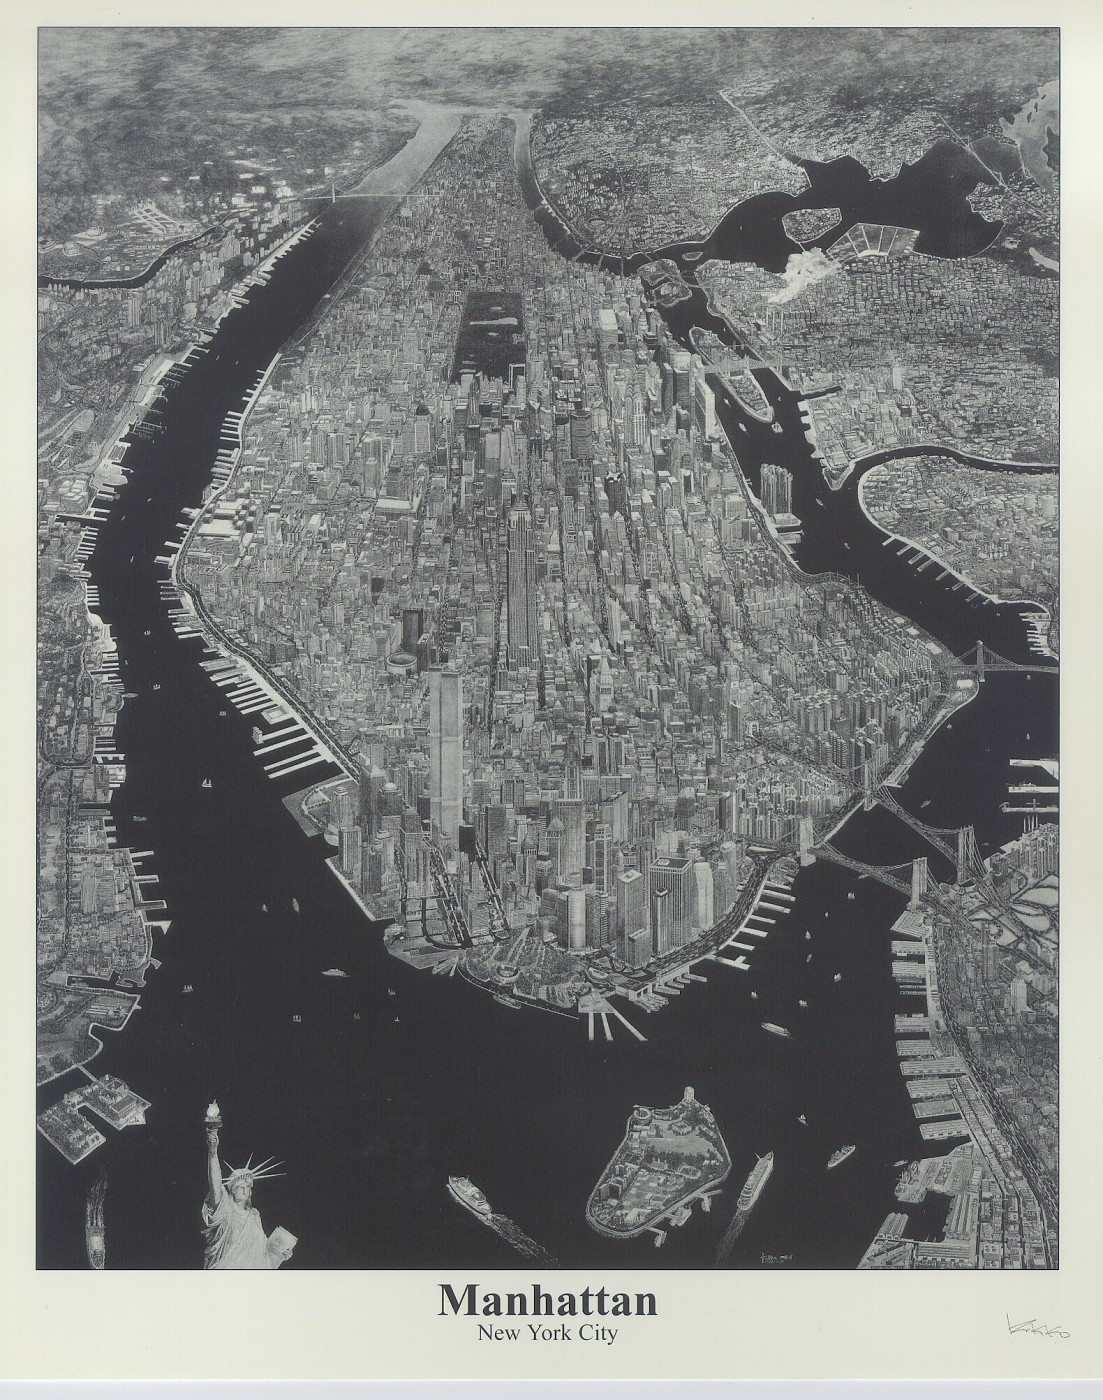 Manhatton New York City Pencil Drawing by Krikko!!! It Took 4 Years and 2496 Pencils to Make The Original is 20FT by 15FT!!!  Important Note!  For Purchases go to Krikko's website listed below.  Do not order from me.  My photo here is a low resolution.  G